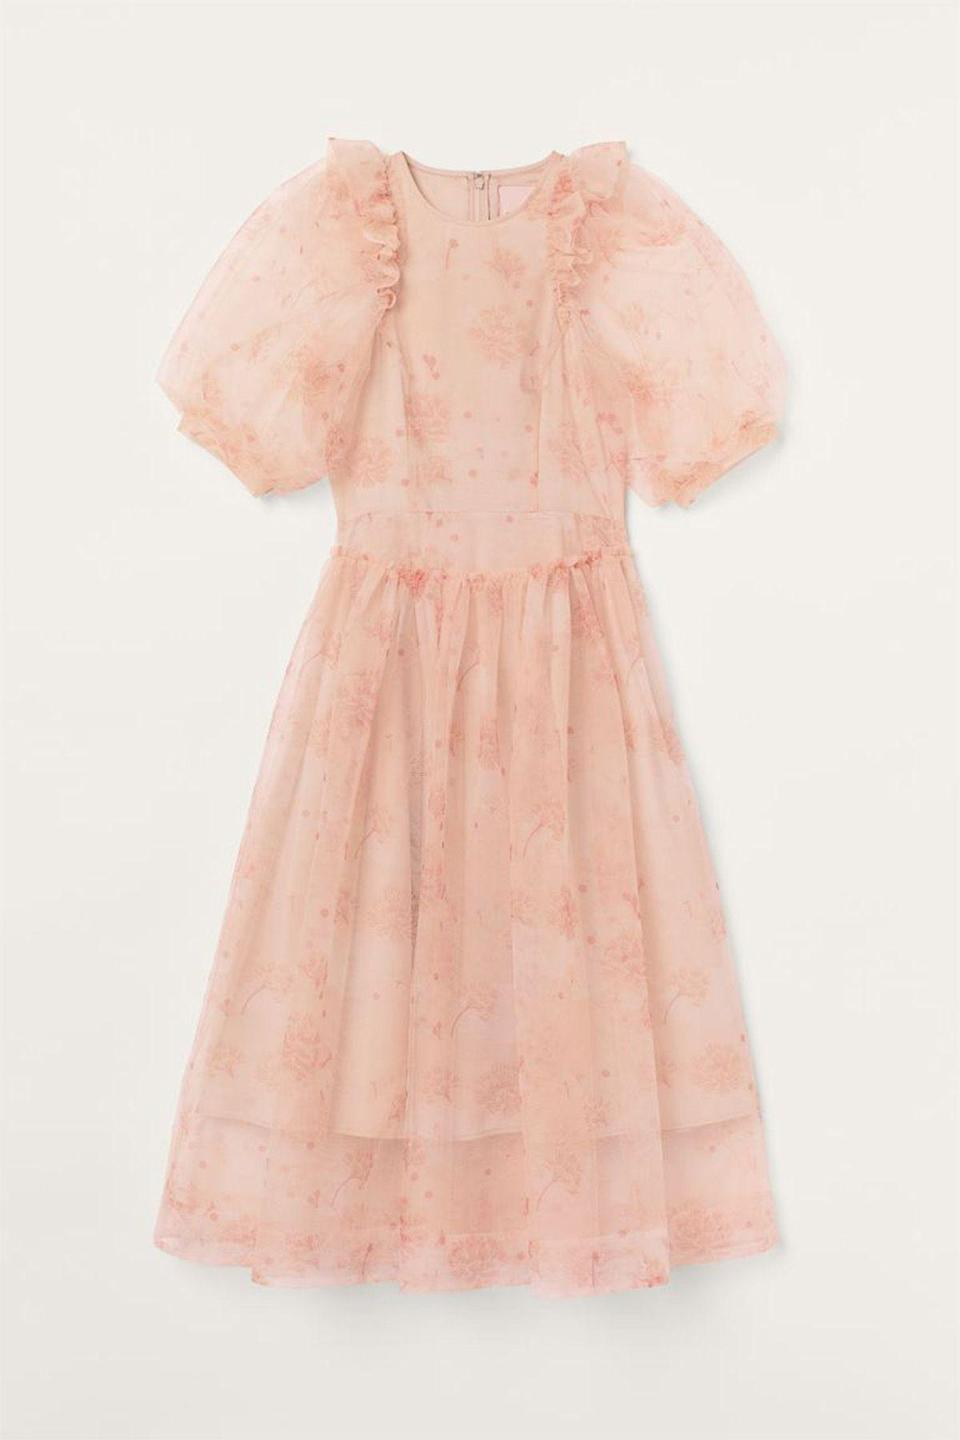 "<p><strong>H&M x Simone Rocha </strong></p><p>hm.com</p><p><strong>$199.00</strong></p><p><a href=""https://go.redirectingat.com?id=74968X1596630&url=https%3A%2F%2Fwww2.hm.com%2Fen_us%2Fproductpage.0904600005.html&sref=https%3A%2F%2Fwww.townandcountrymag.com%2Fstyle%2Ffashion-trends%2Fg35800778%2Fsimone-rocha-hm-launch-dreamy-collaboration%2F"" rel=""nofollow noopener"" target=""_blank"" data-ylk=""slk:Shop Now"" class=""link rapid-noclick-resp"">Shop Now</a></p>"